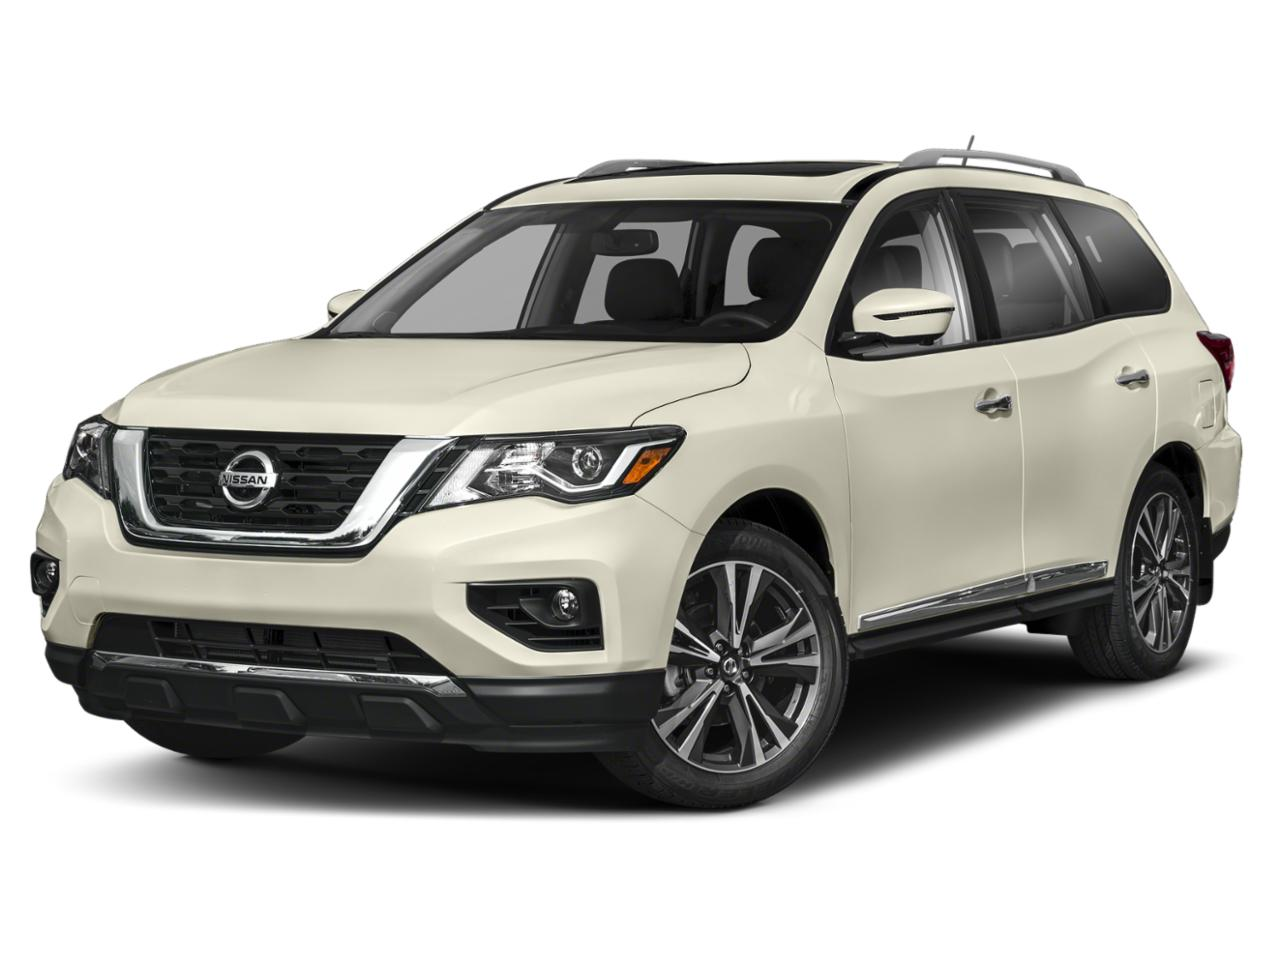 2018 Nissan Pathfinder Vehicle Photo in Bowie, MD 20716